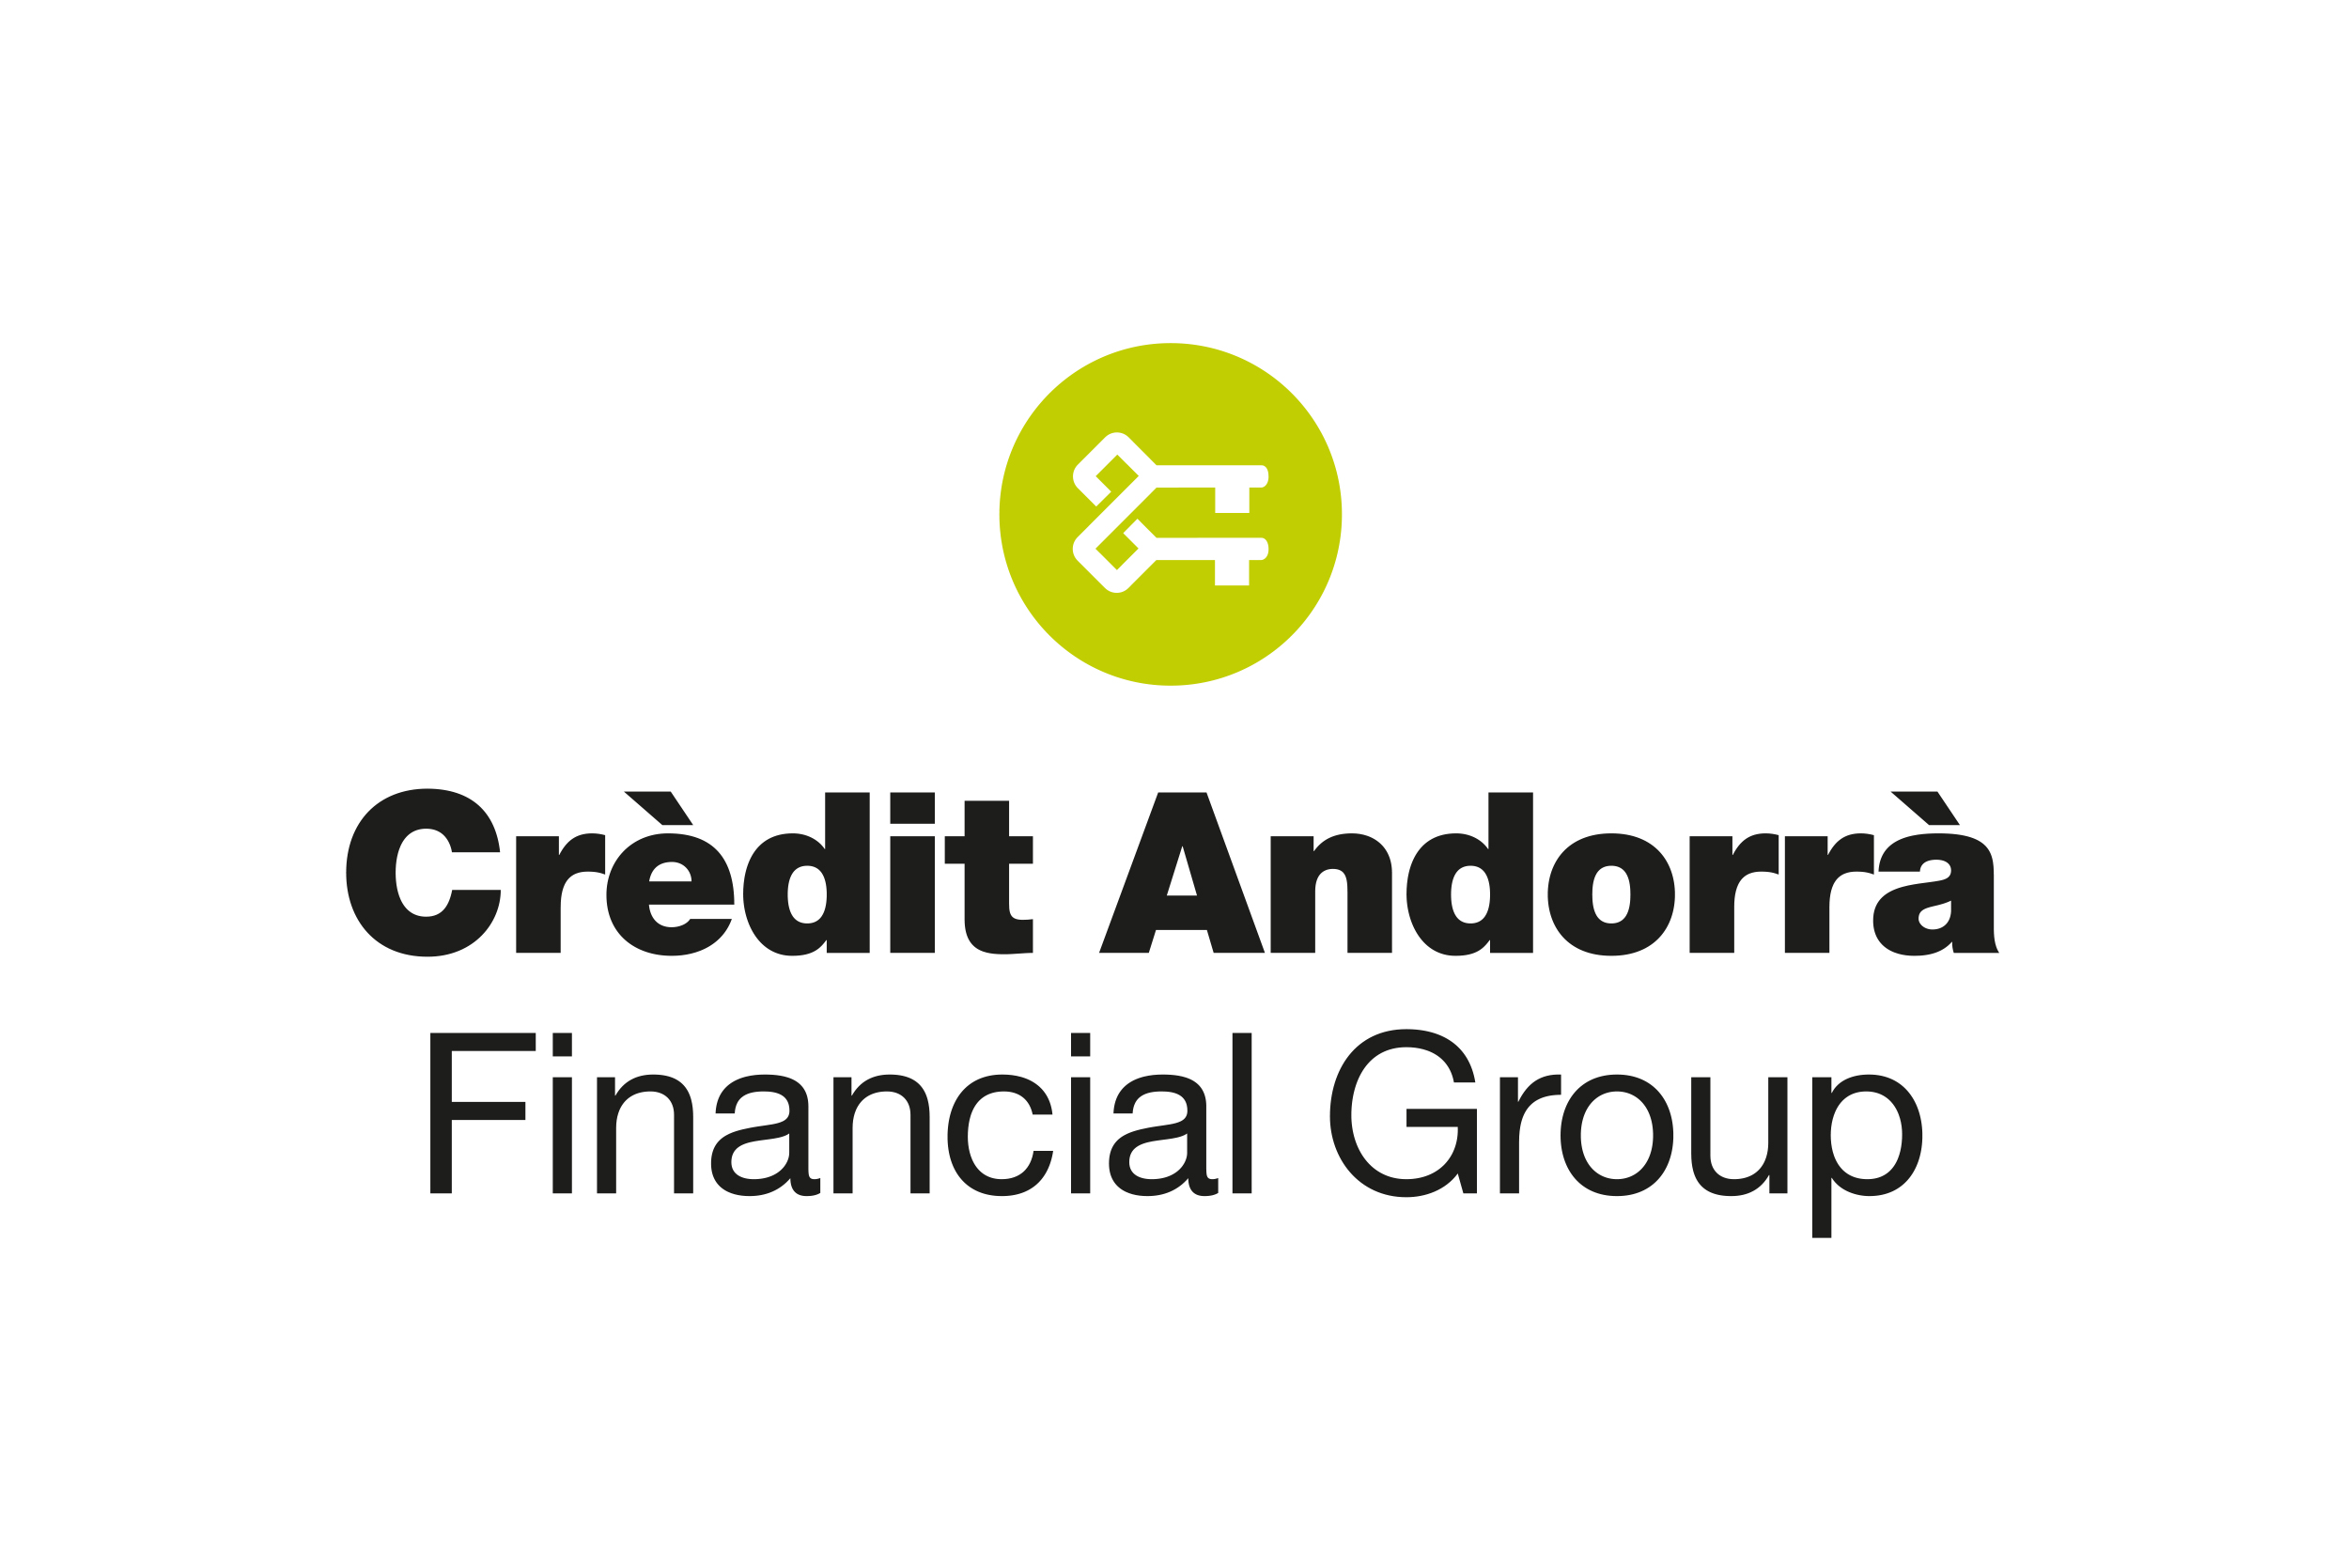 Crèdit Andorrà Financial Group